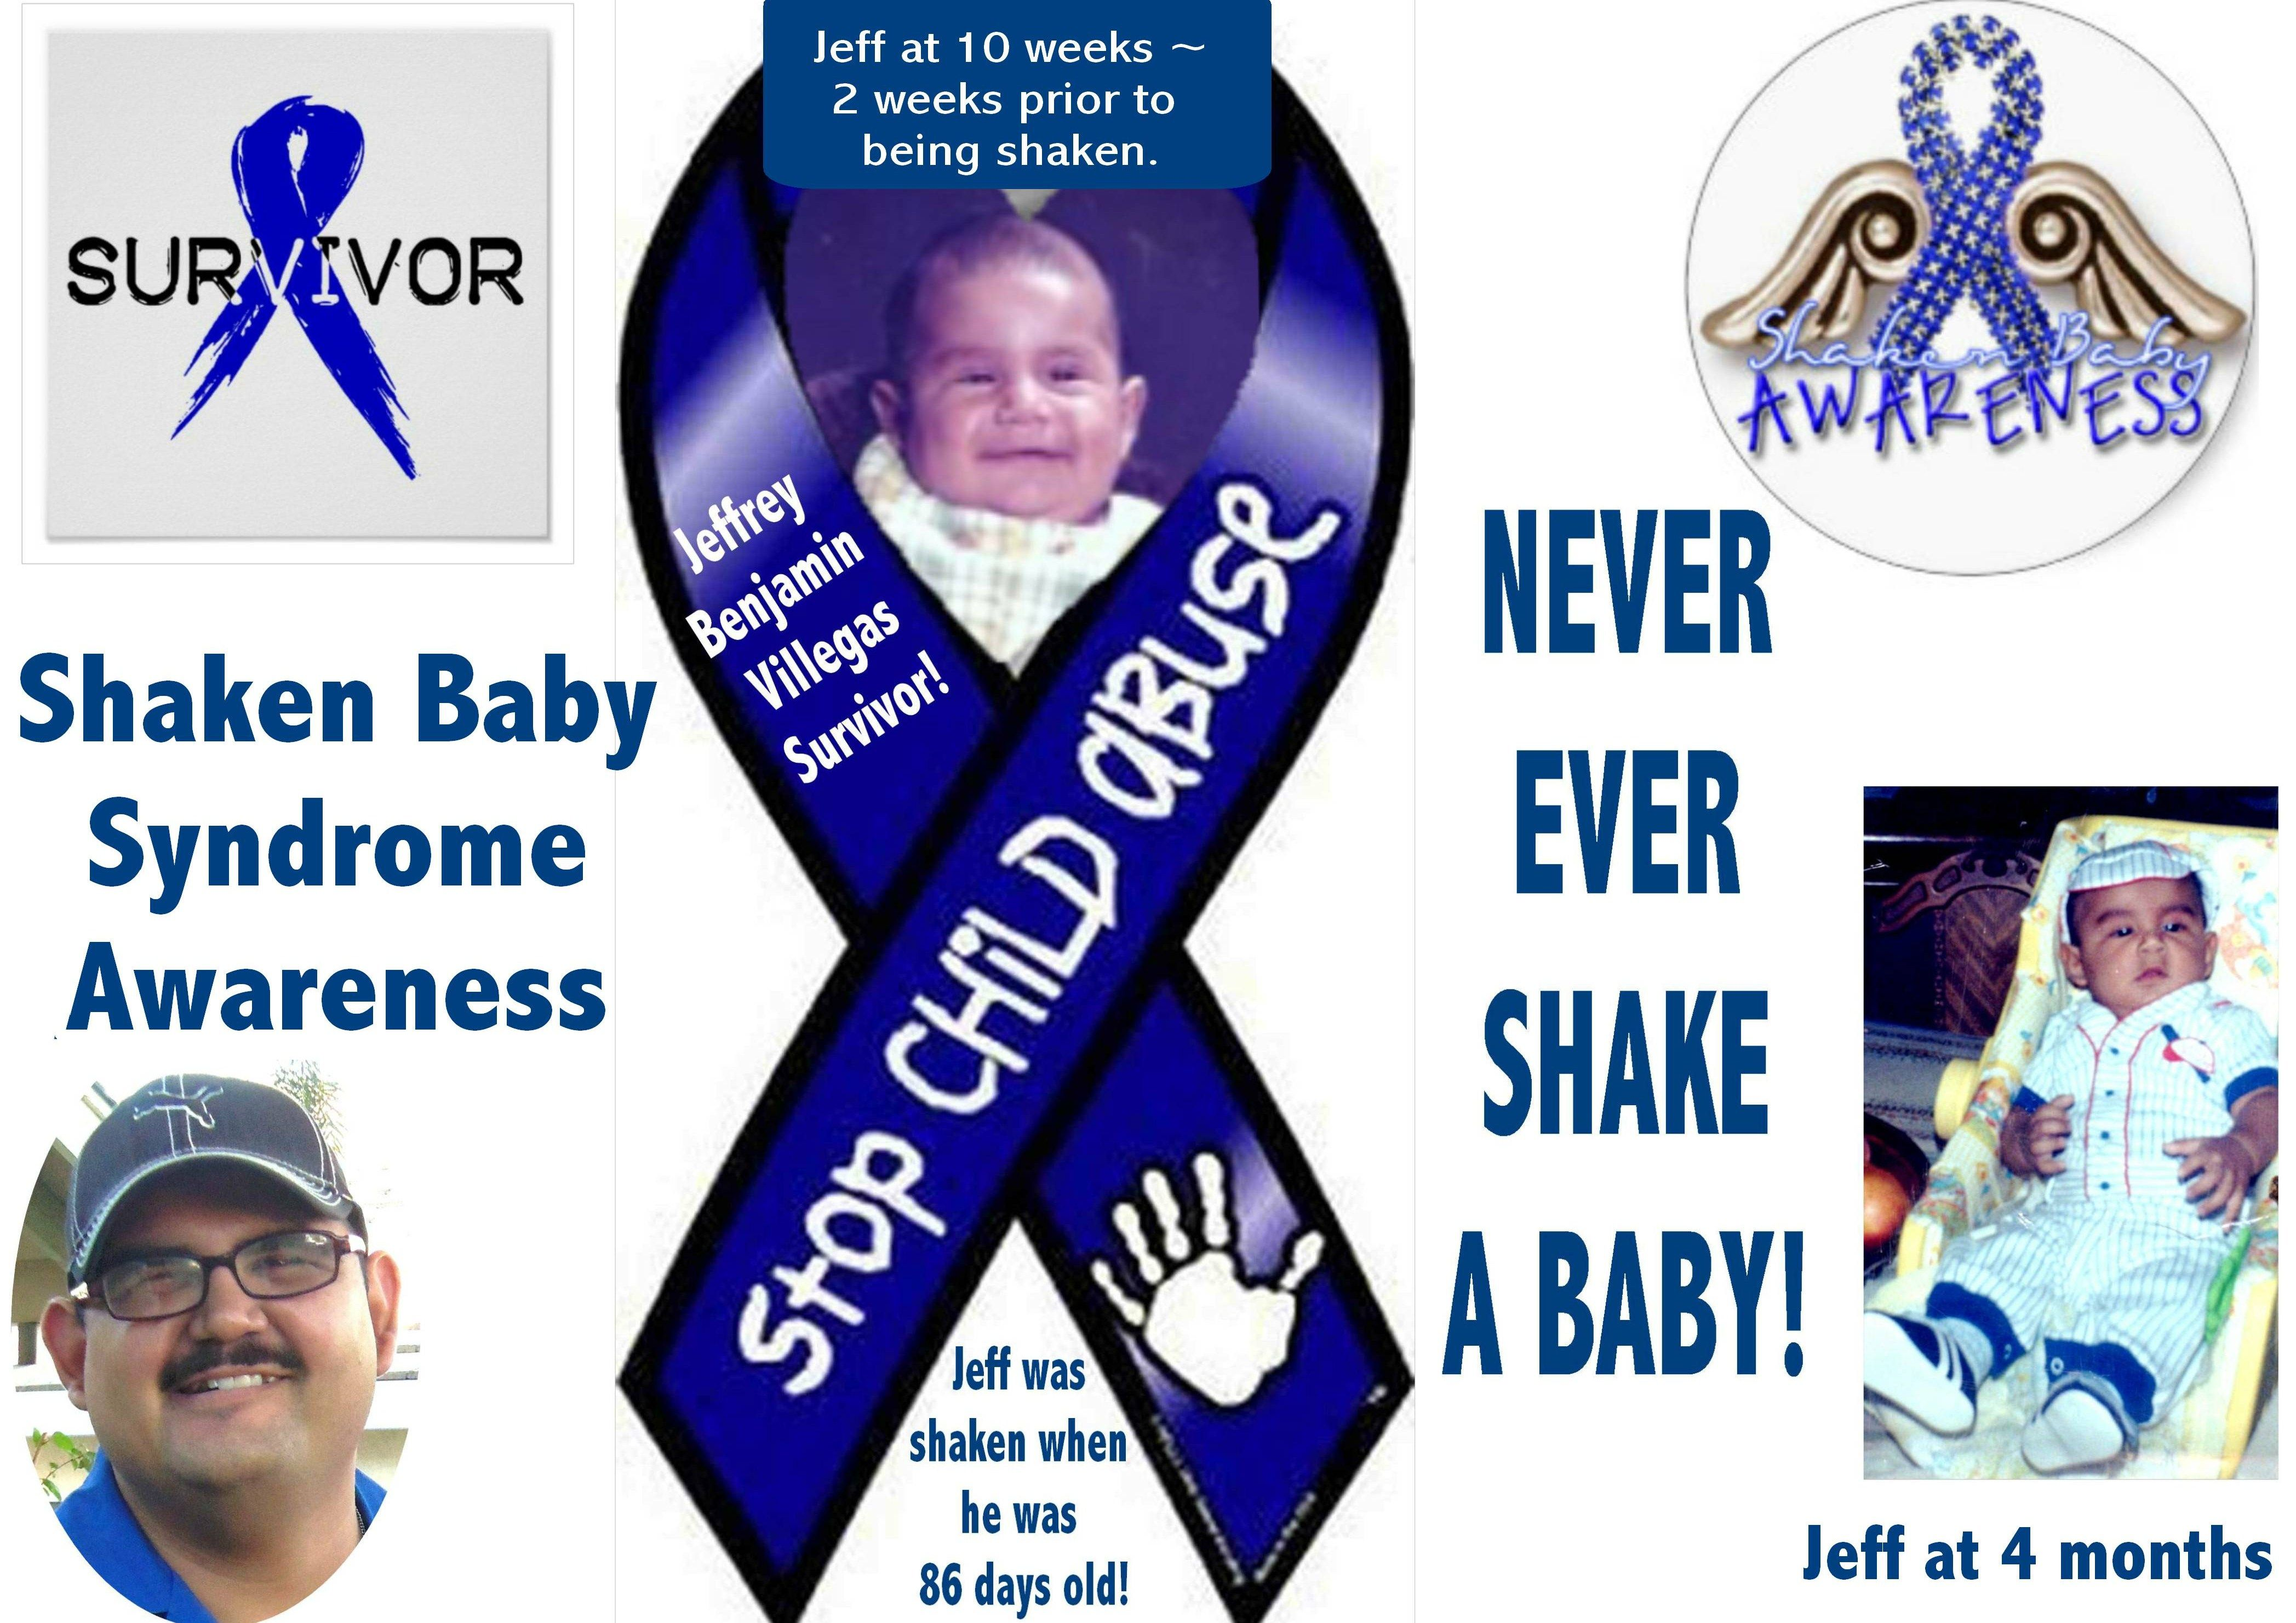 My son was shaken by his father at 12 weeks of age.  It left him with devastating and irreparable brain damage.  He is now almost 29 years old and suffered a second traumatic brain injury when he was 11.